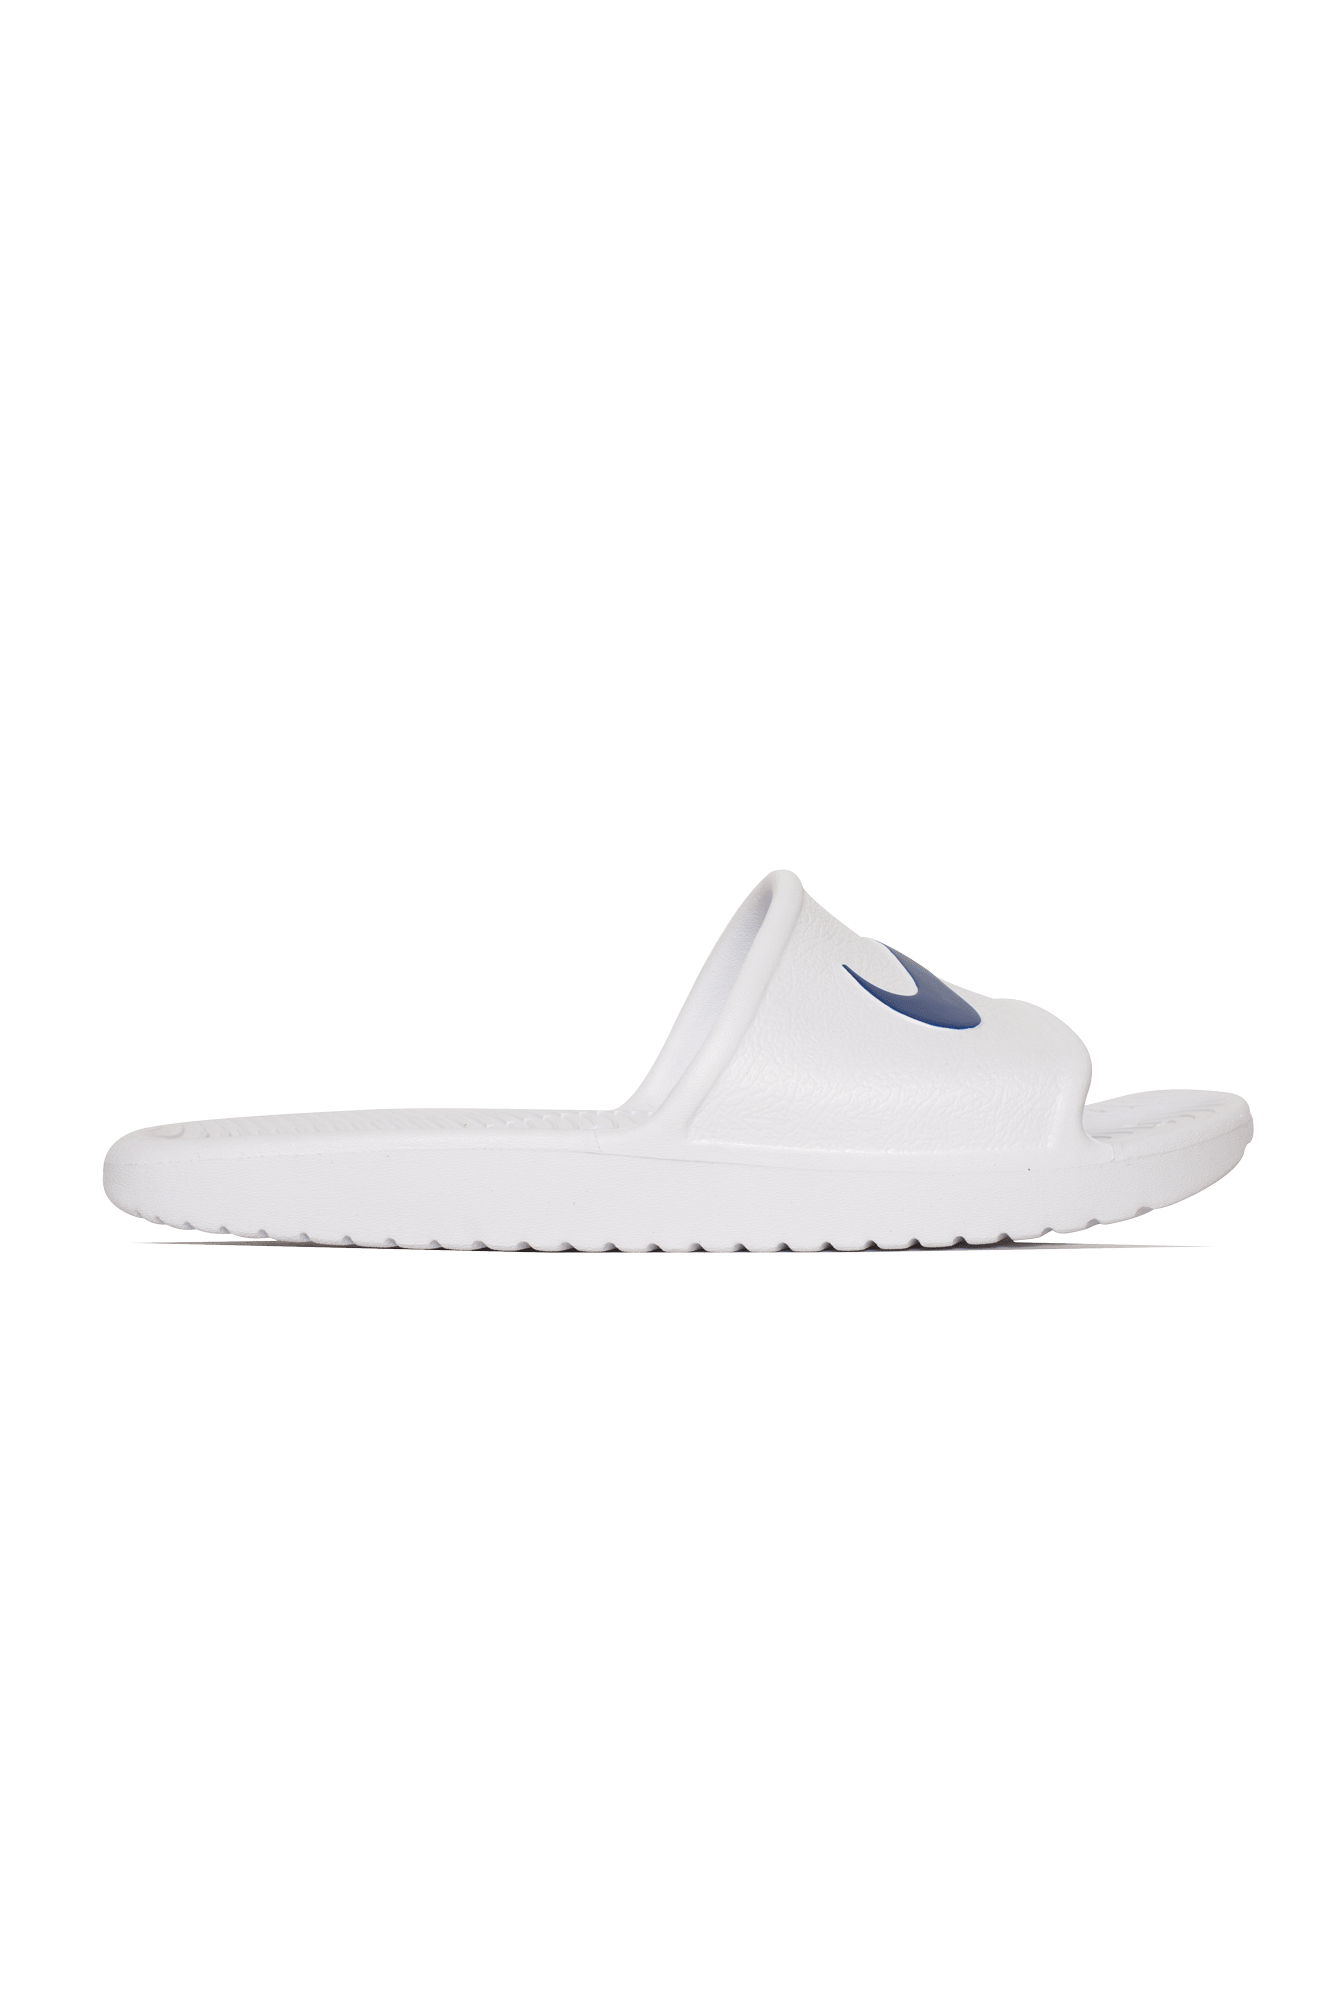 Nike Sandali & Ciabatte Kawa Shower Slide Bianco Bianco - One Block Down